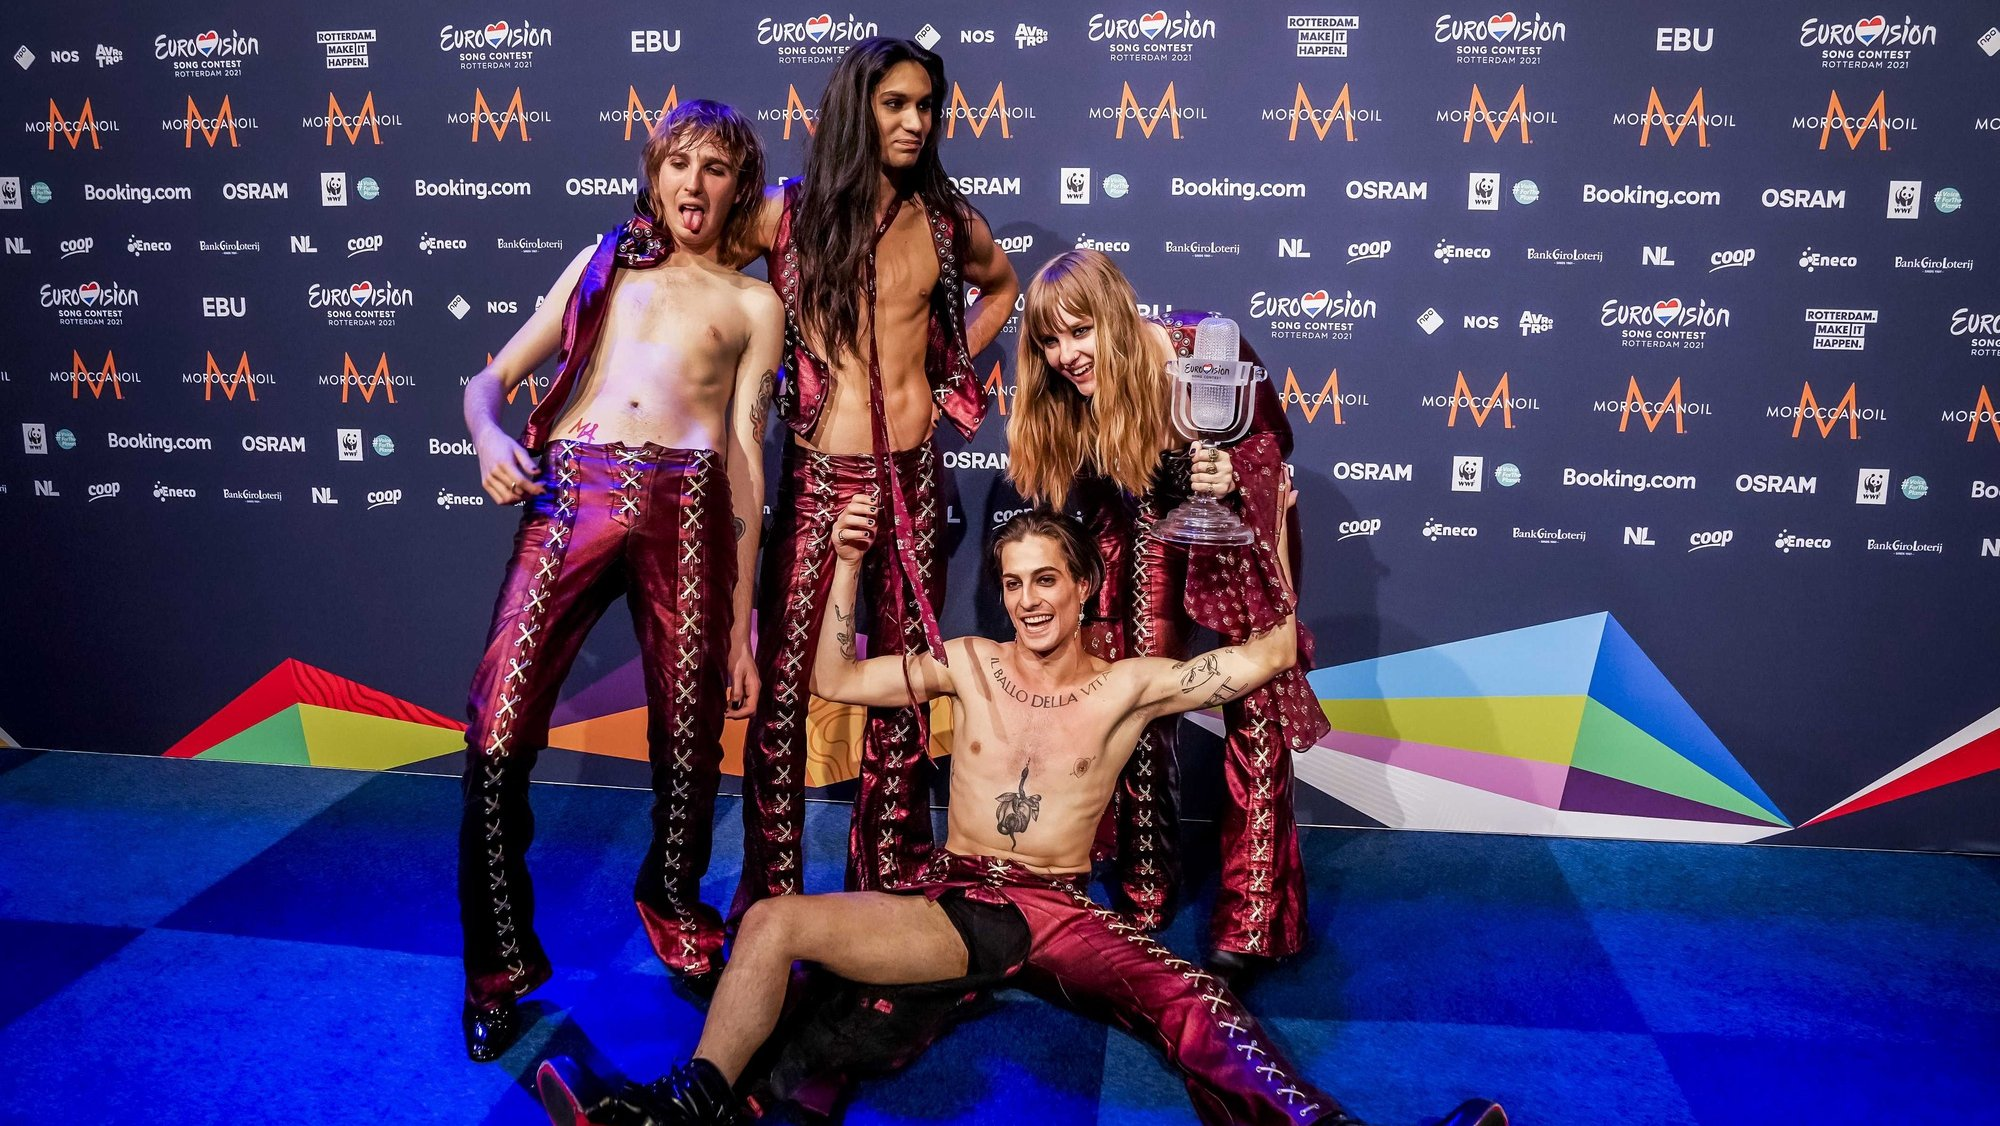 epa09221825 Maneskin from Italy pose for photographs during a press conference after winning the Grand Final of the 65th annual Eurovision Song Contest (ESC) at the Rotterdam Ahoy arena, in Rotterdam, The Netherlands, 22 May 2021. Due to the coronavirus (COVID-19) pandemic, only a limited number of visitors is allowed at the 65th edition of the Eurovision Song Contest (ESC2021) that is taking place in an adapted form at the Rotterdam Ahoy.  EPA/Sander Koning / POOL *** Local Caption *** 50359766